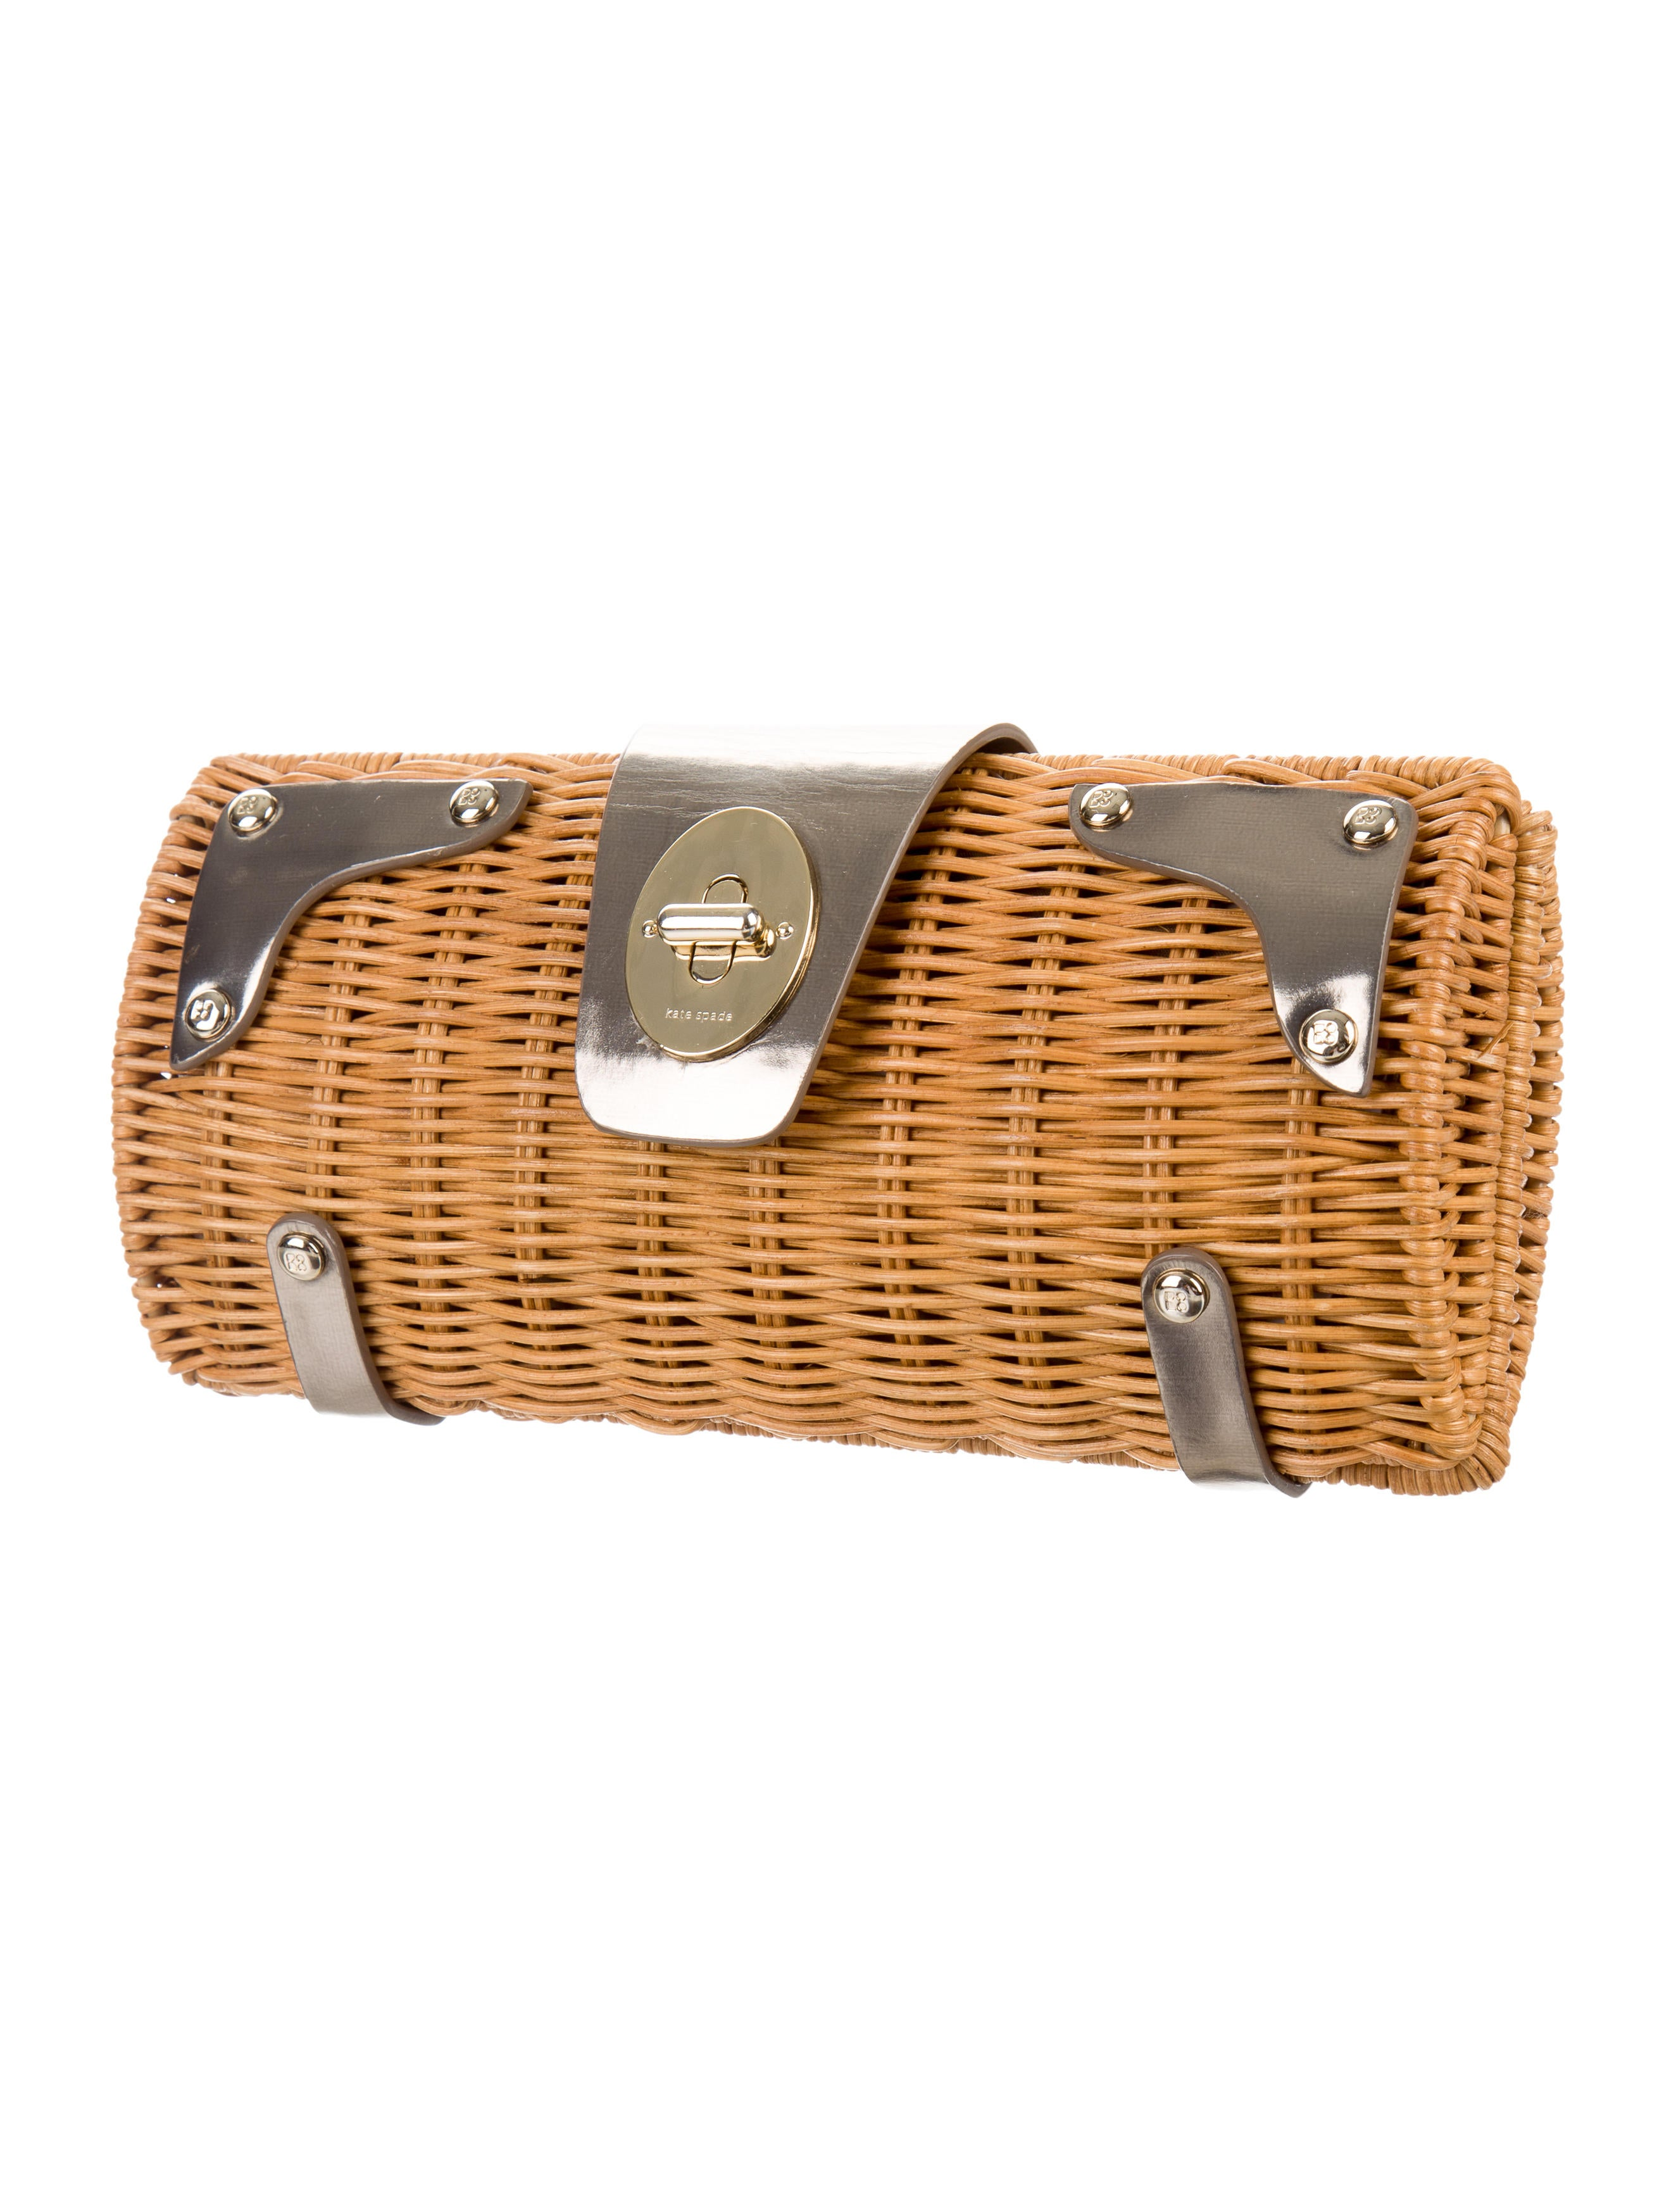 Kate Spade New York Leather Trimmed Wicker Clutch